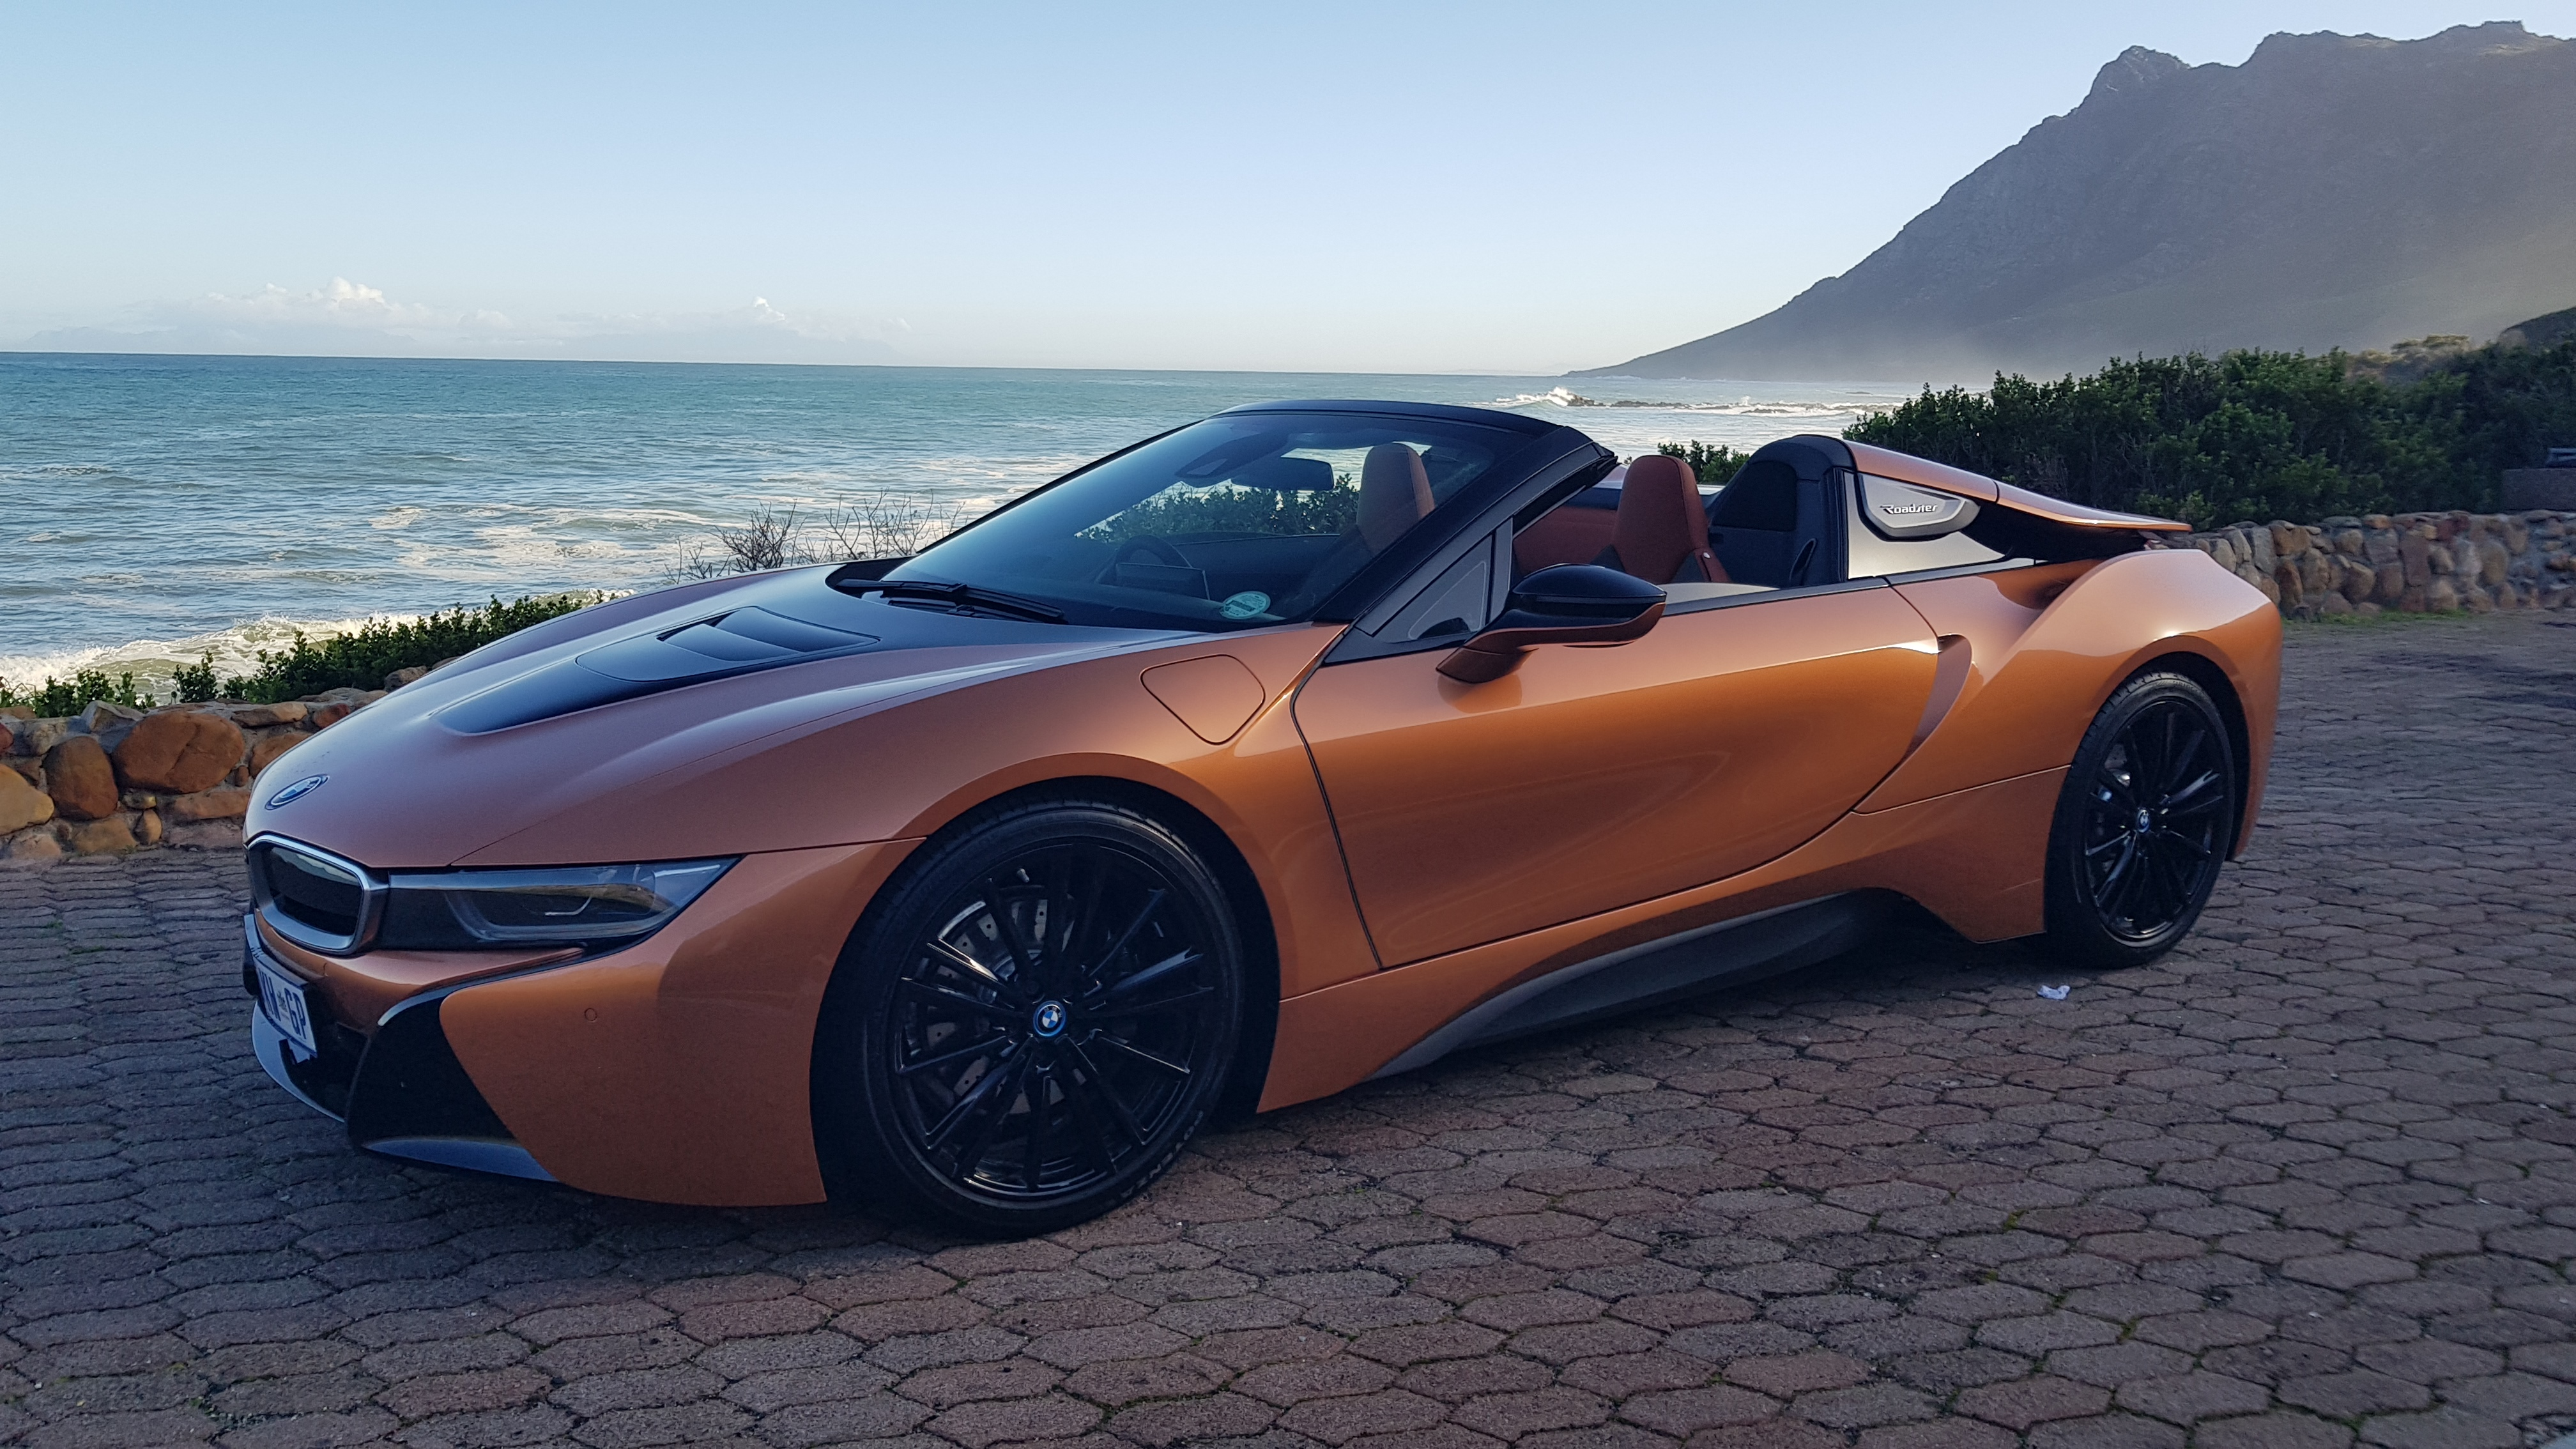 First Drive In The New Bmw I8 Roadster Juliet Mcguire